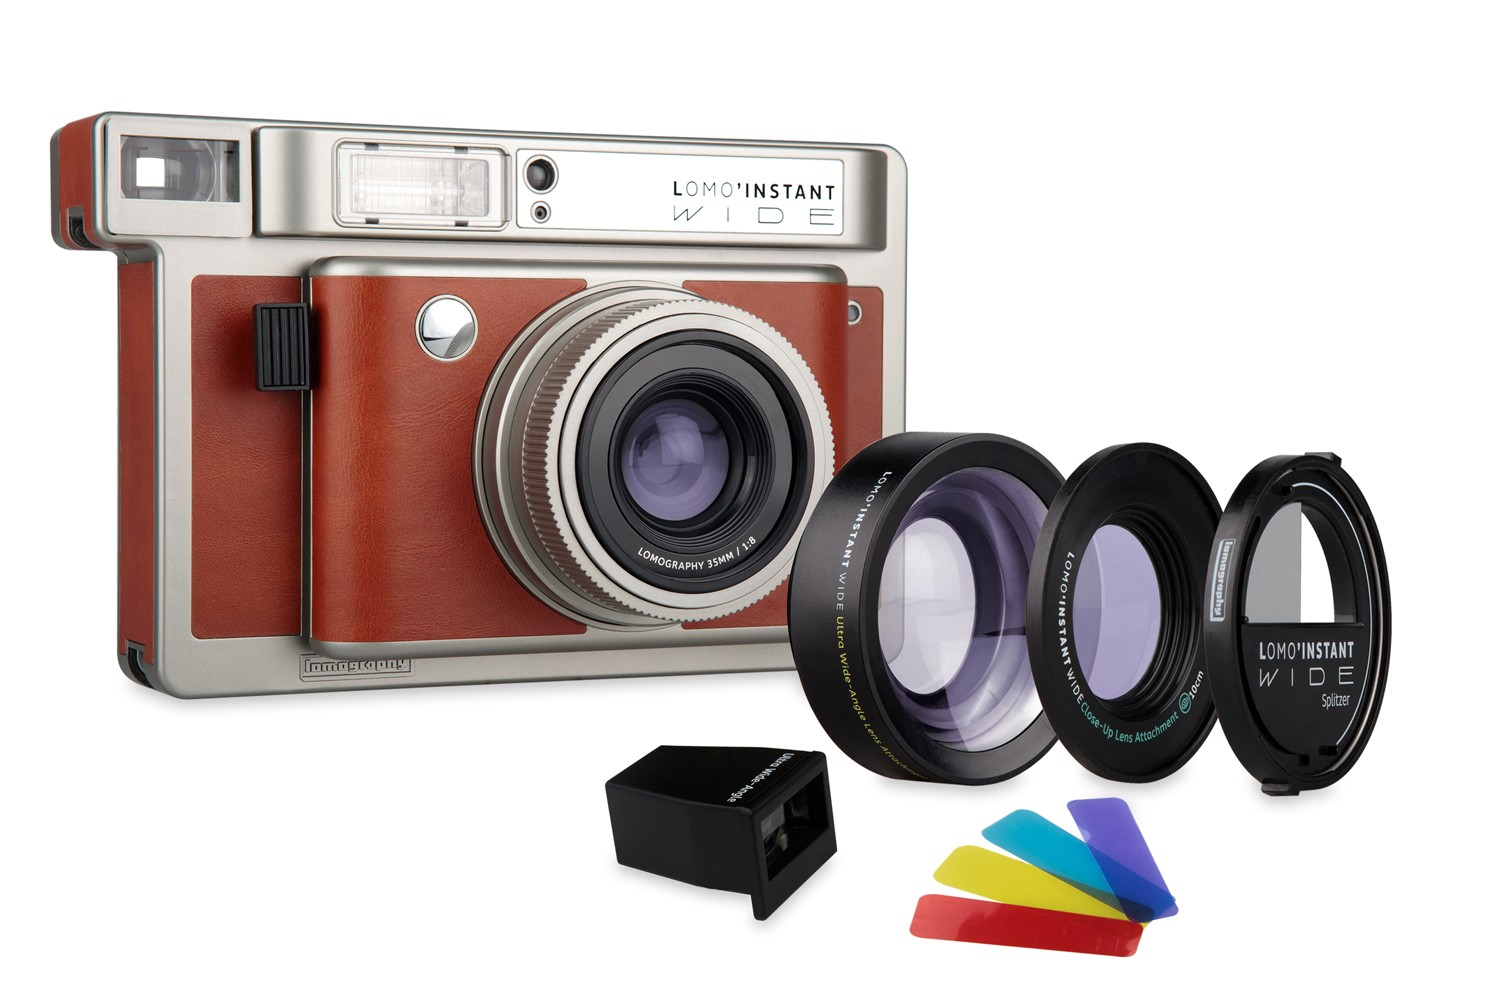 Lomo Instant Wide Camera And Lenses Central Park Edition